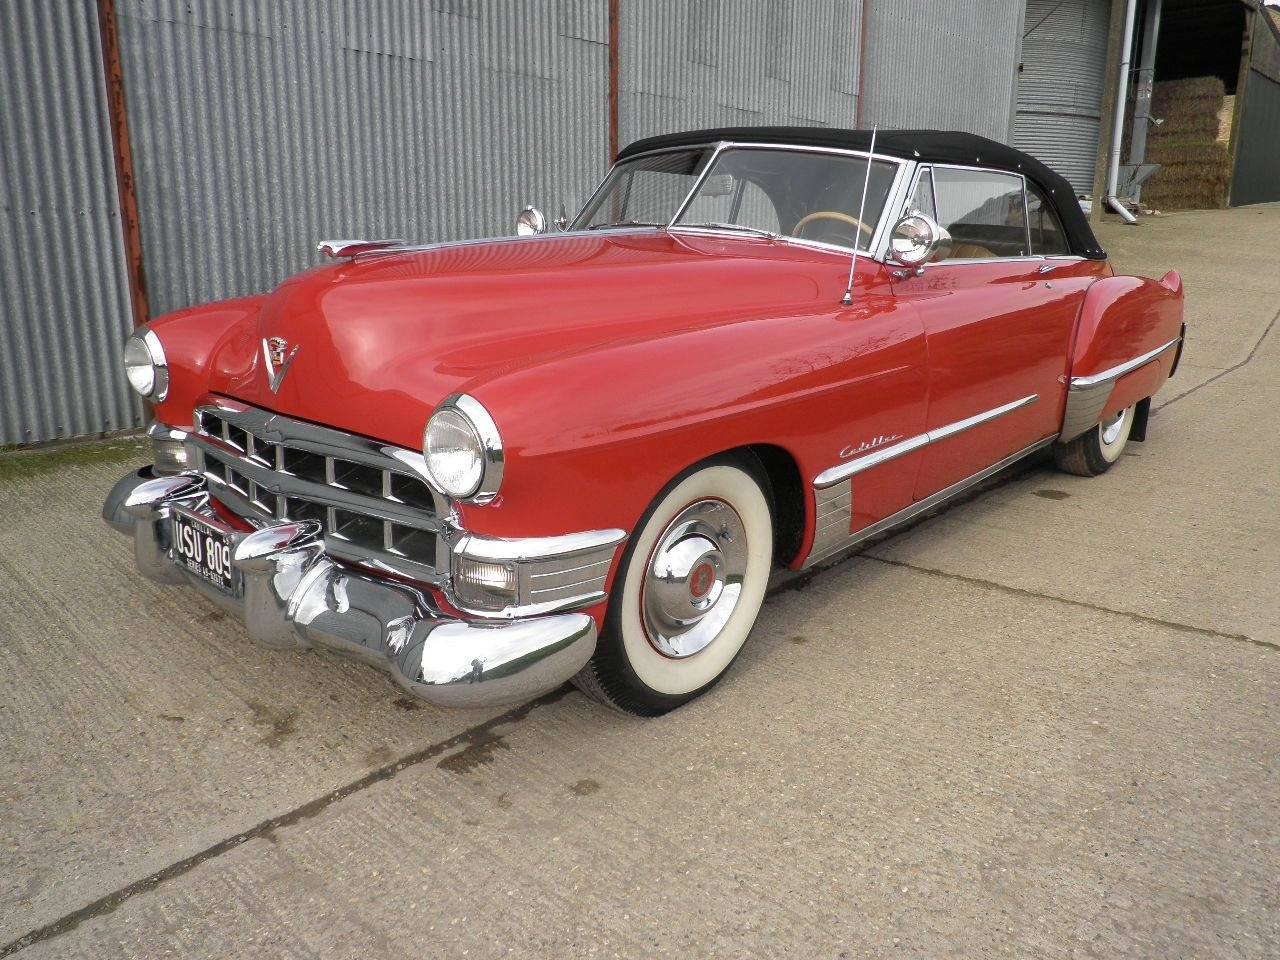 4766 CADILLAC WANTED 40s 50s 60s CADILLAC WANTED For Sale (picture 3 of 12)